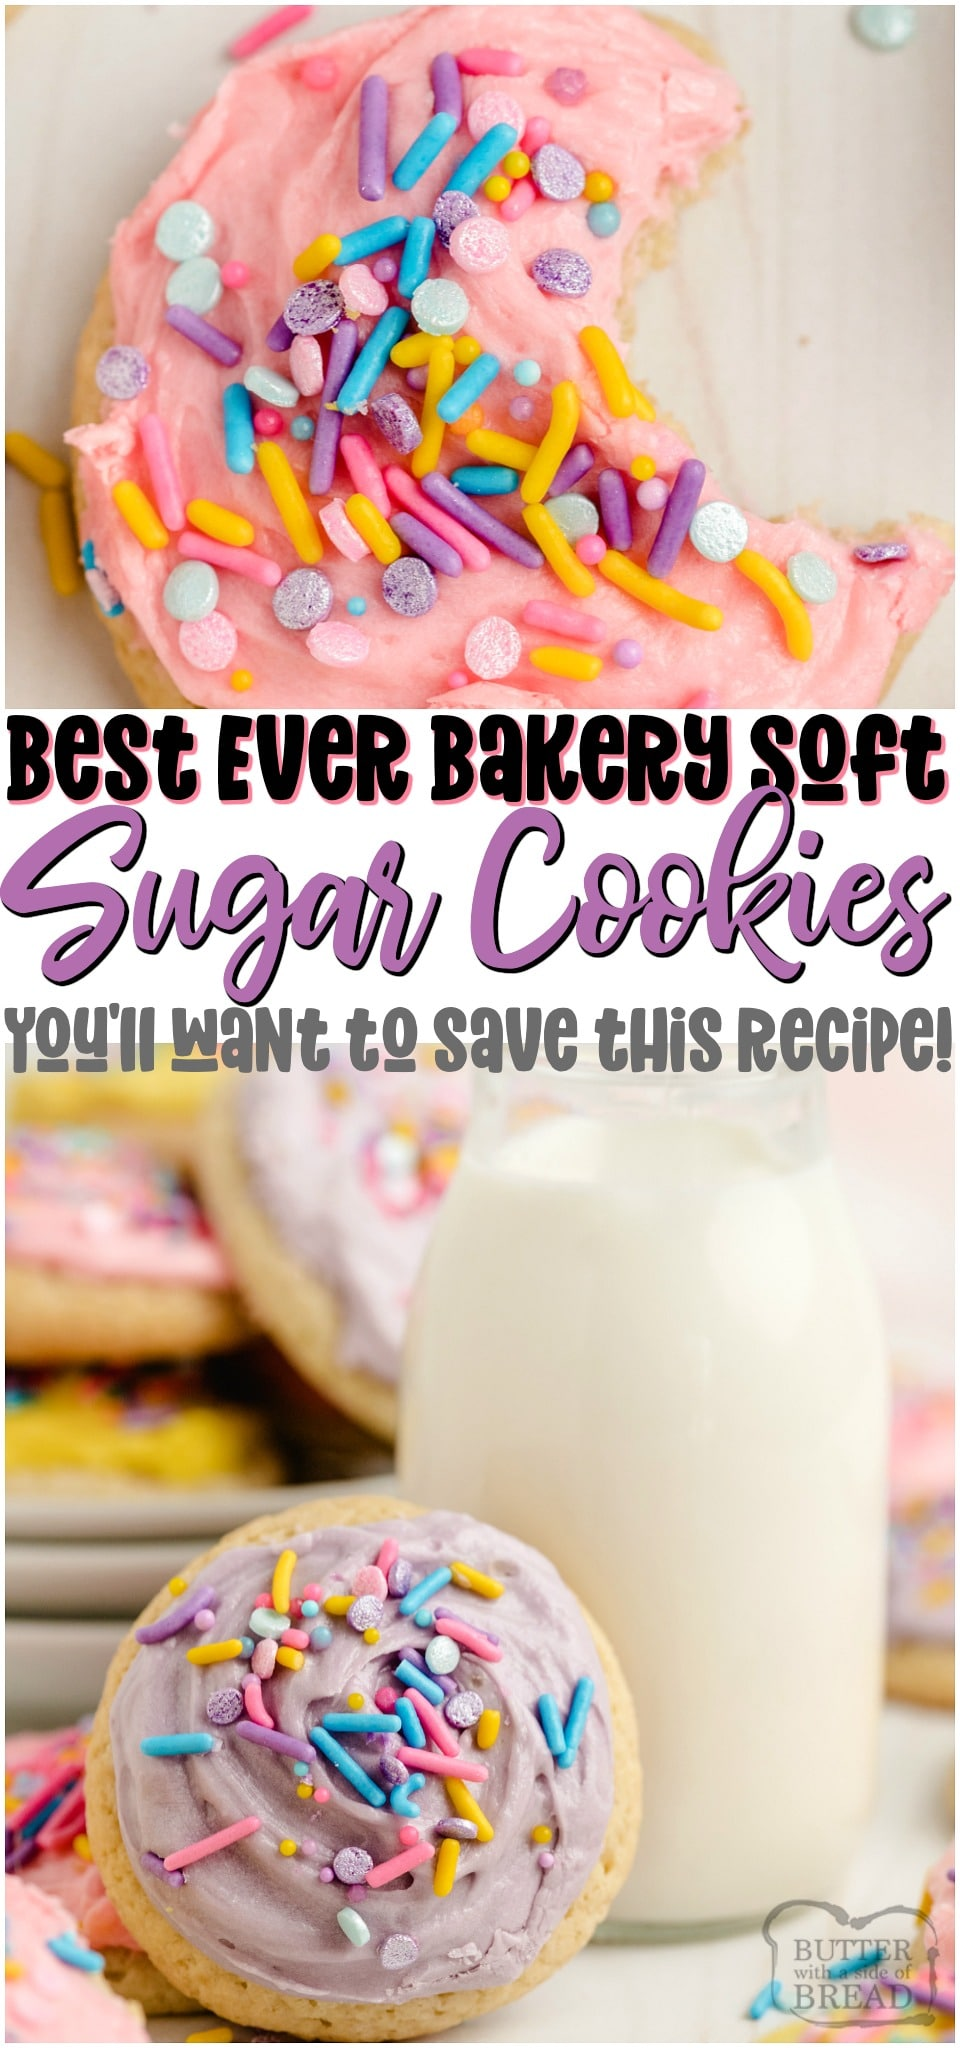 Super Soft Sugar Cookies made with butter, sugar, flour & sour cream for great flavor and bakery soft texture! Softest sugar cookies you've ever had- & they decorate beautifully! Save this recipe!#sugarcookies #cookies #softcookies #holidaybaking #cutoutcookies #baking #dessert #recipe from BUTTER WITH A SIDE OF BREAD